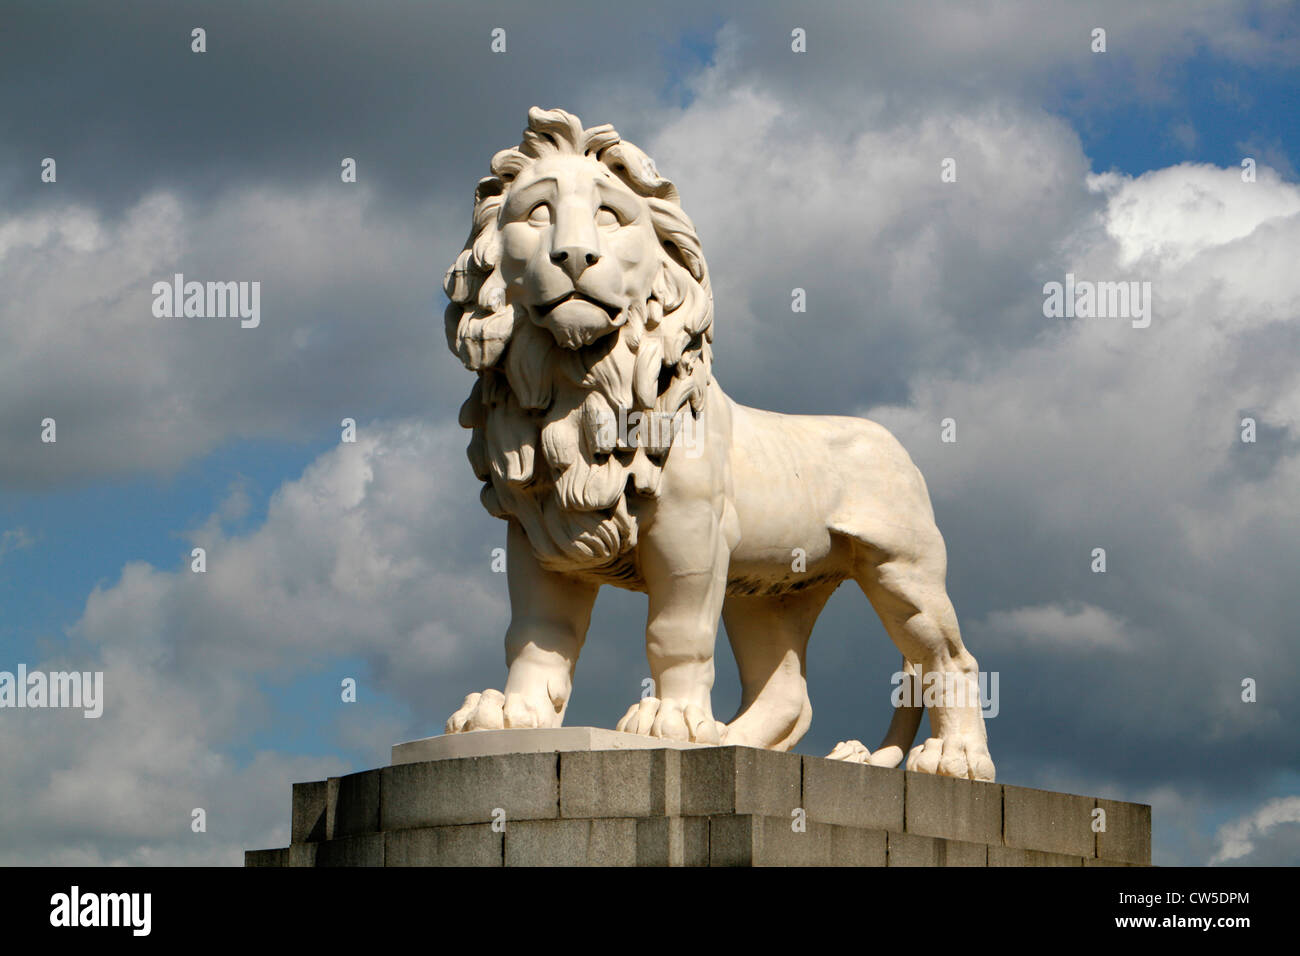 South Bank Lion statue by Westminster Bridge, South Bank, London, UK - Stock Image